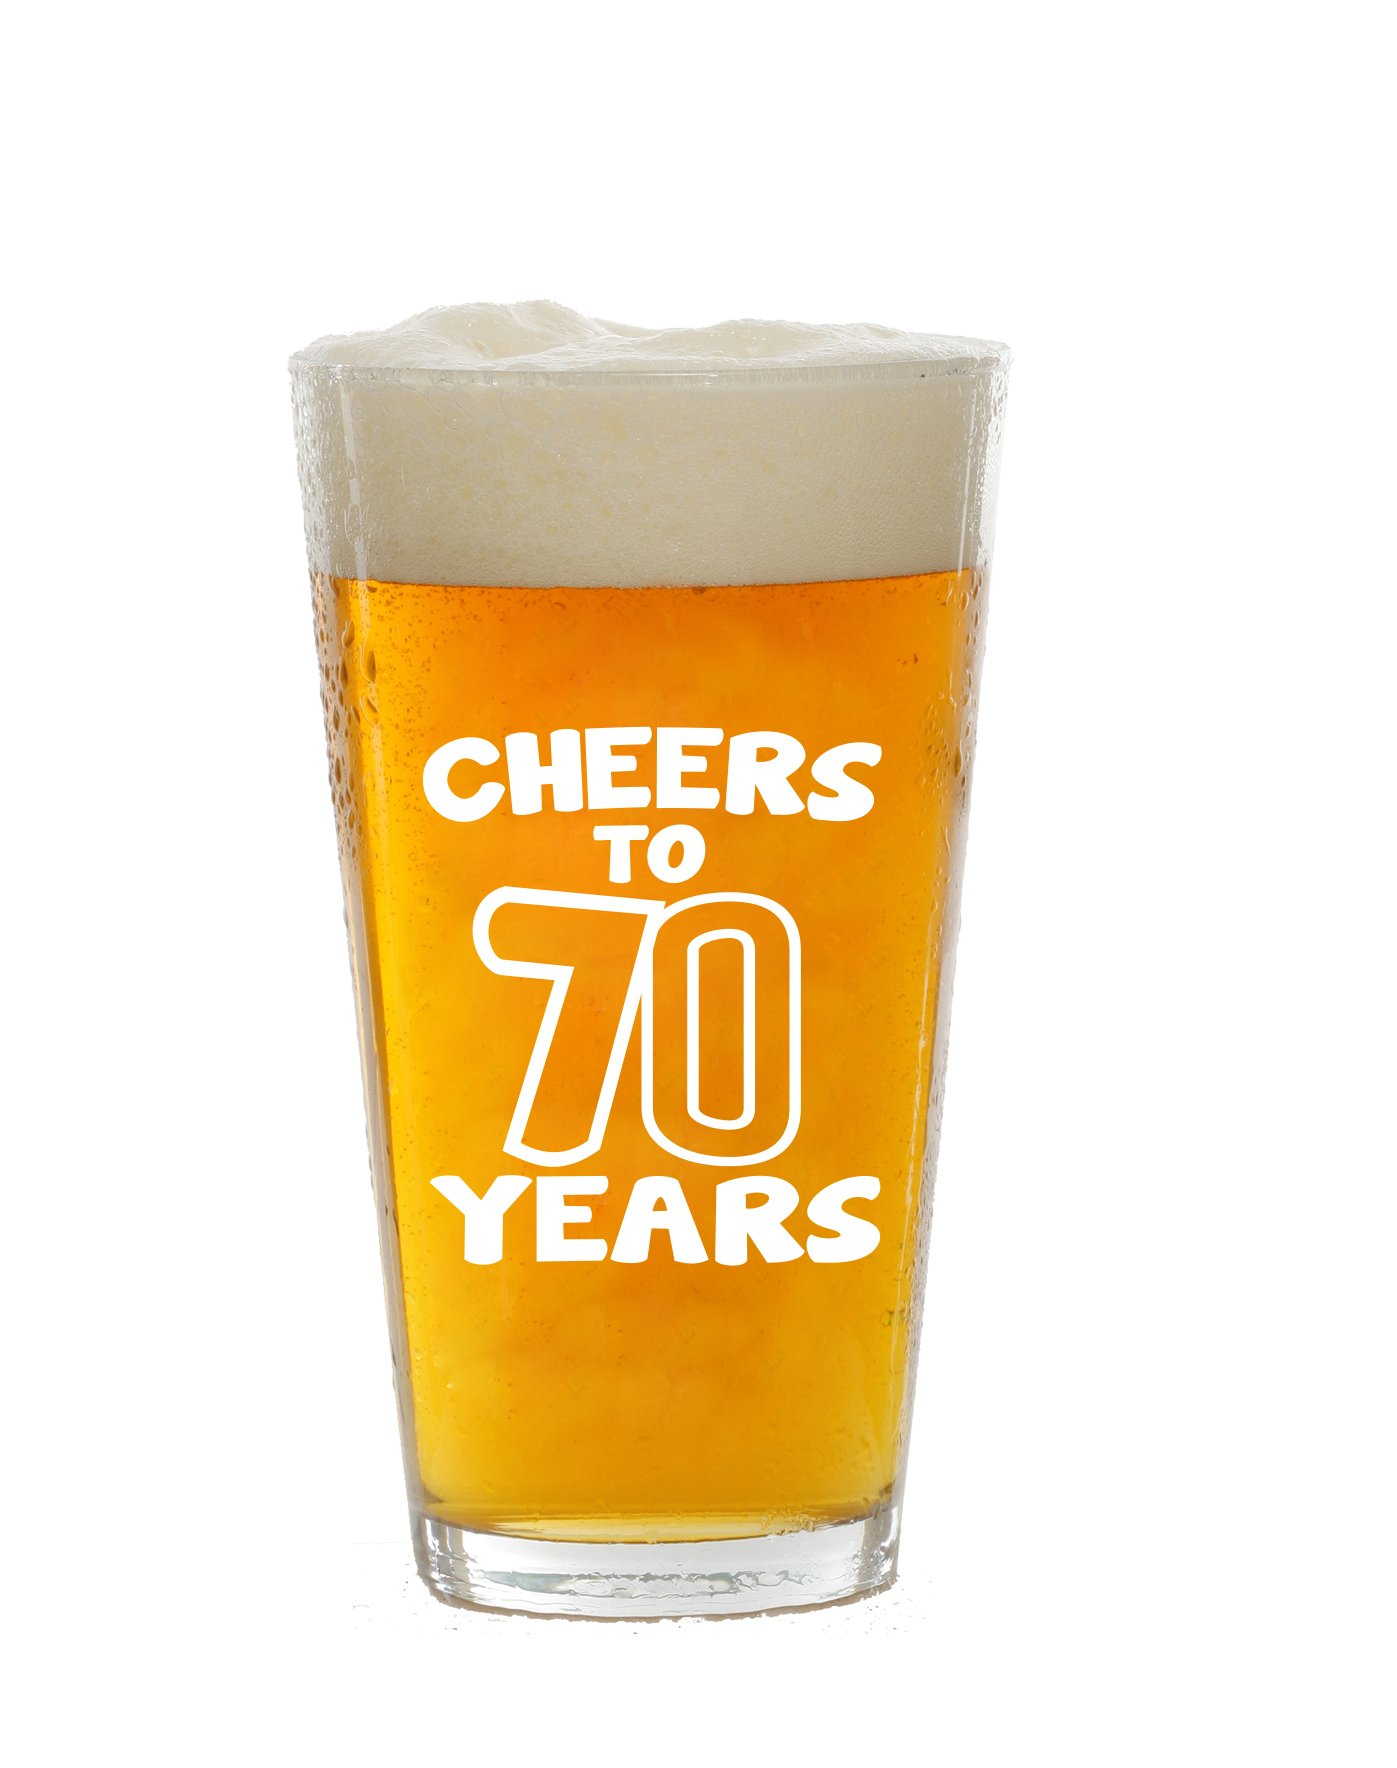 70th Birthday 16oz Beer Pint Glass for Men or Women - Funny Beer Glasses Gift for Him or Her – Cheers To Seventy 70 Years - 70 Year Old Presents for Dad, Husband, Wife, Mom - IPA Mug